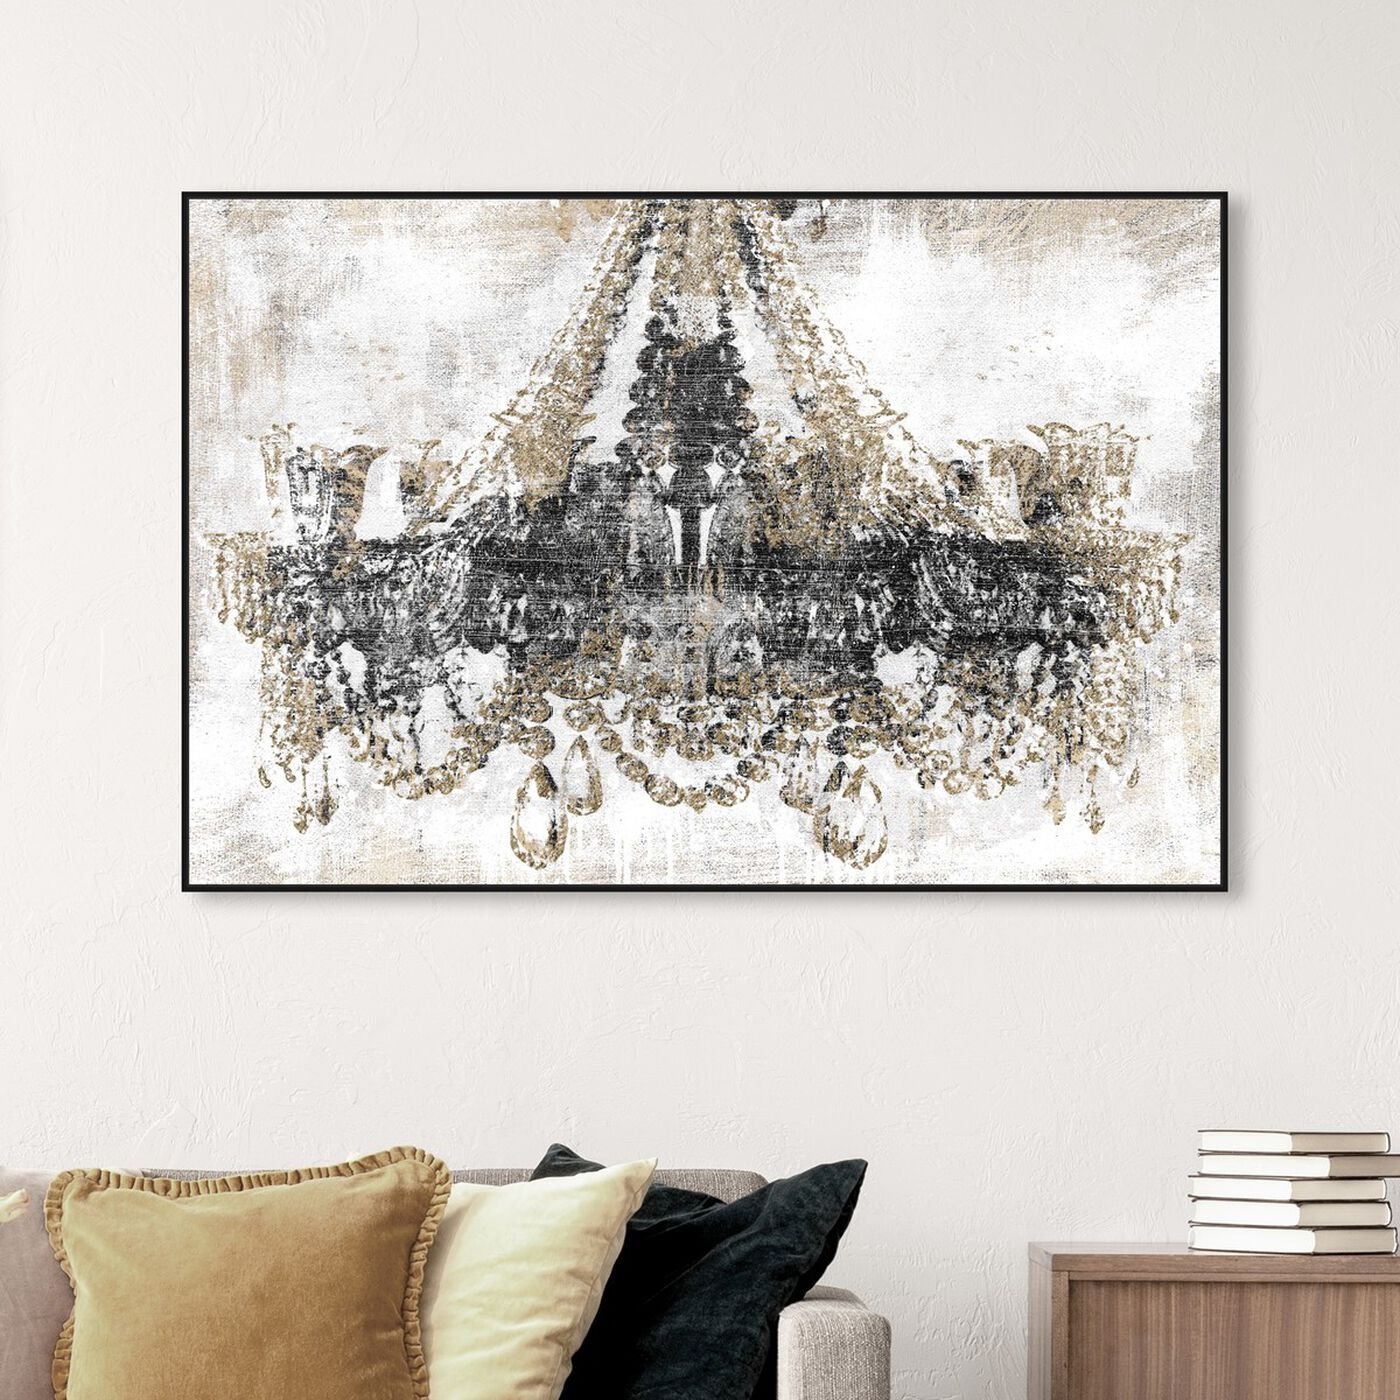 Hanging view of Luxury Night Diamonds featuring fashion and glam and chandeliers art.